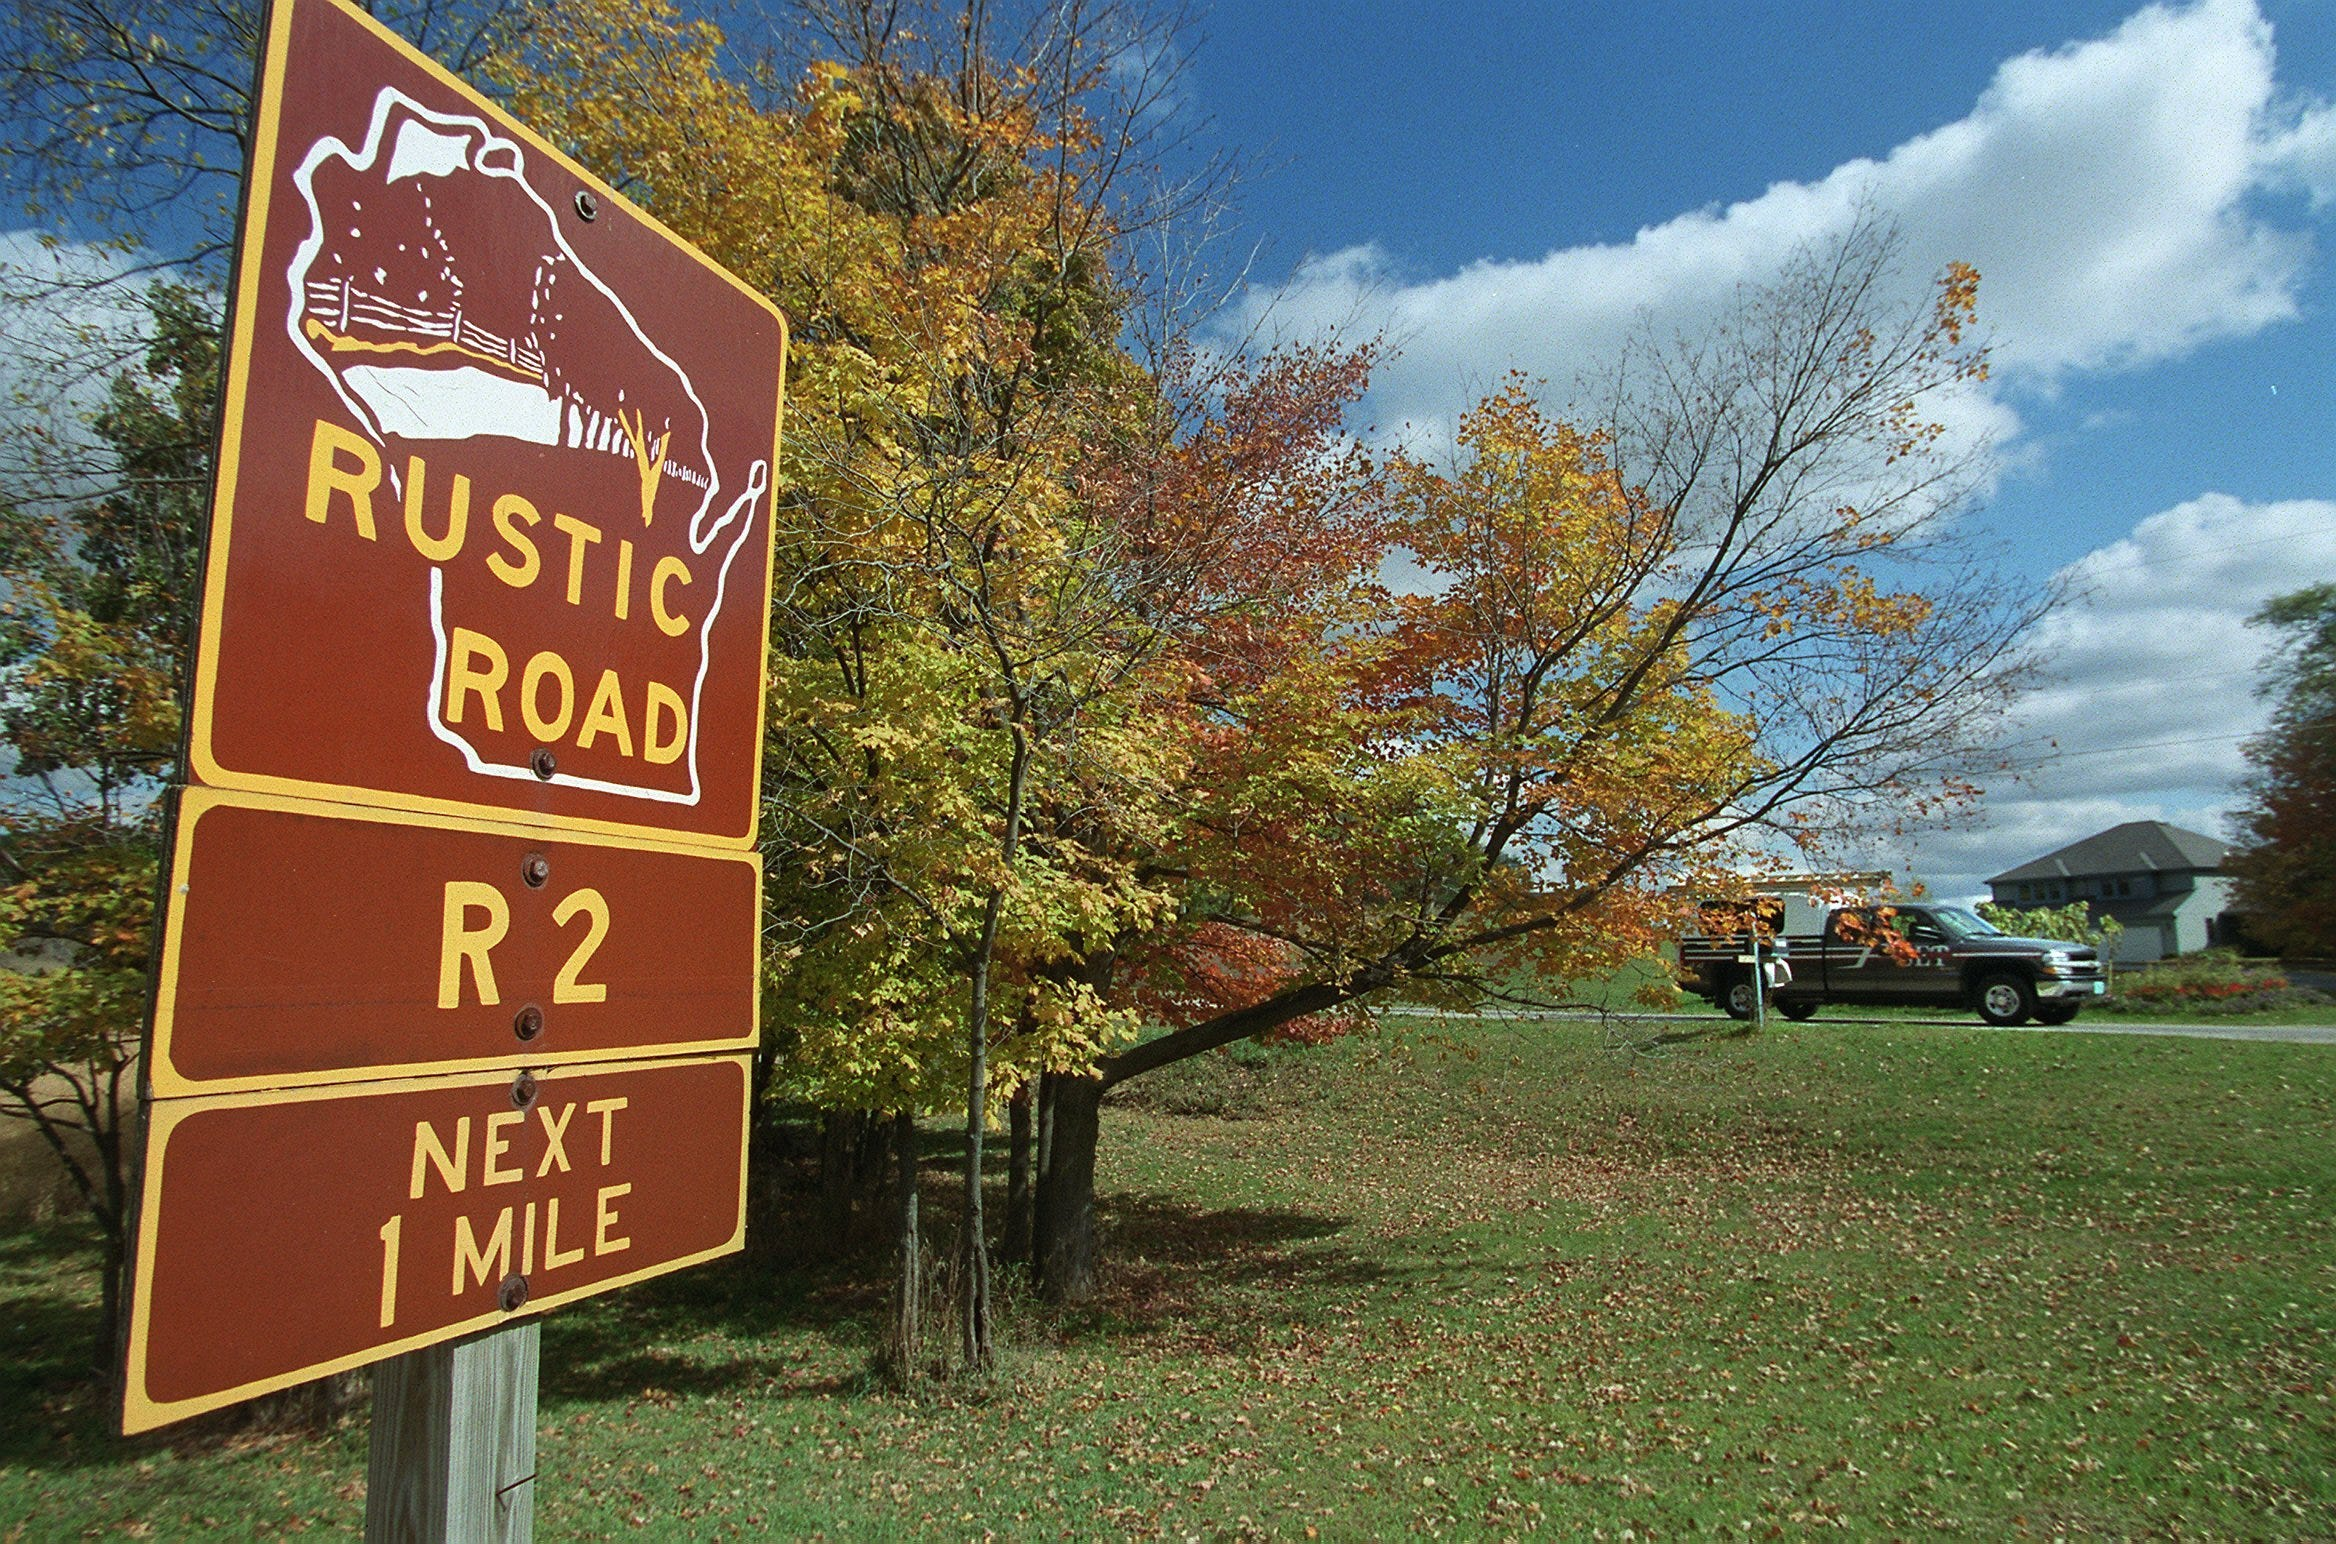 Rustic Road 2 follows Honey Lake Road, Maple Lane and Heritage Road through Rochester in Racine County.